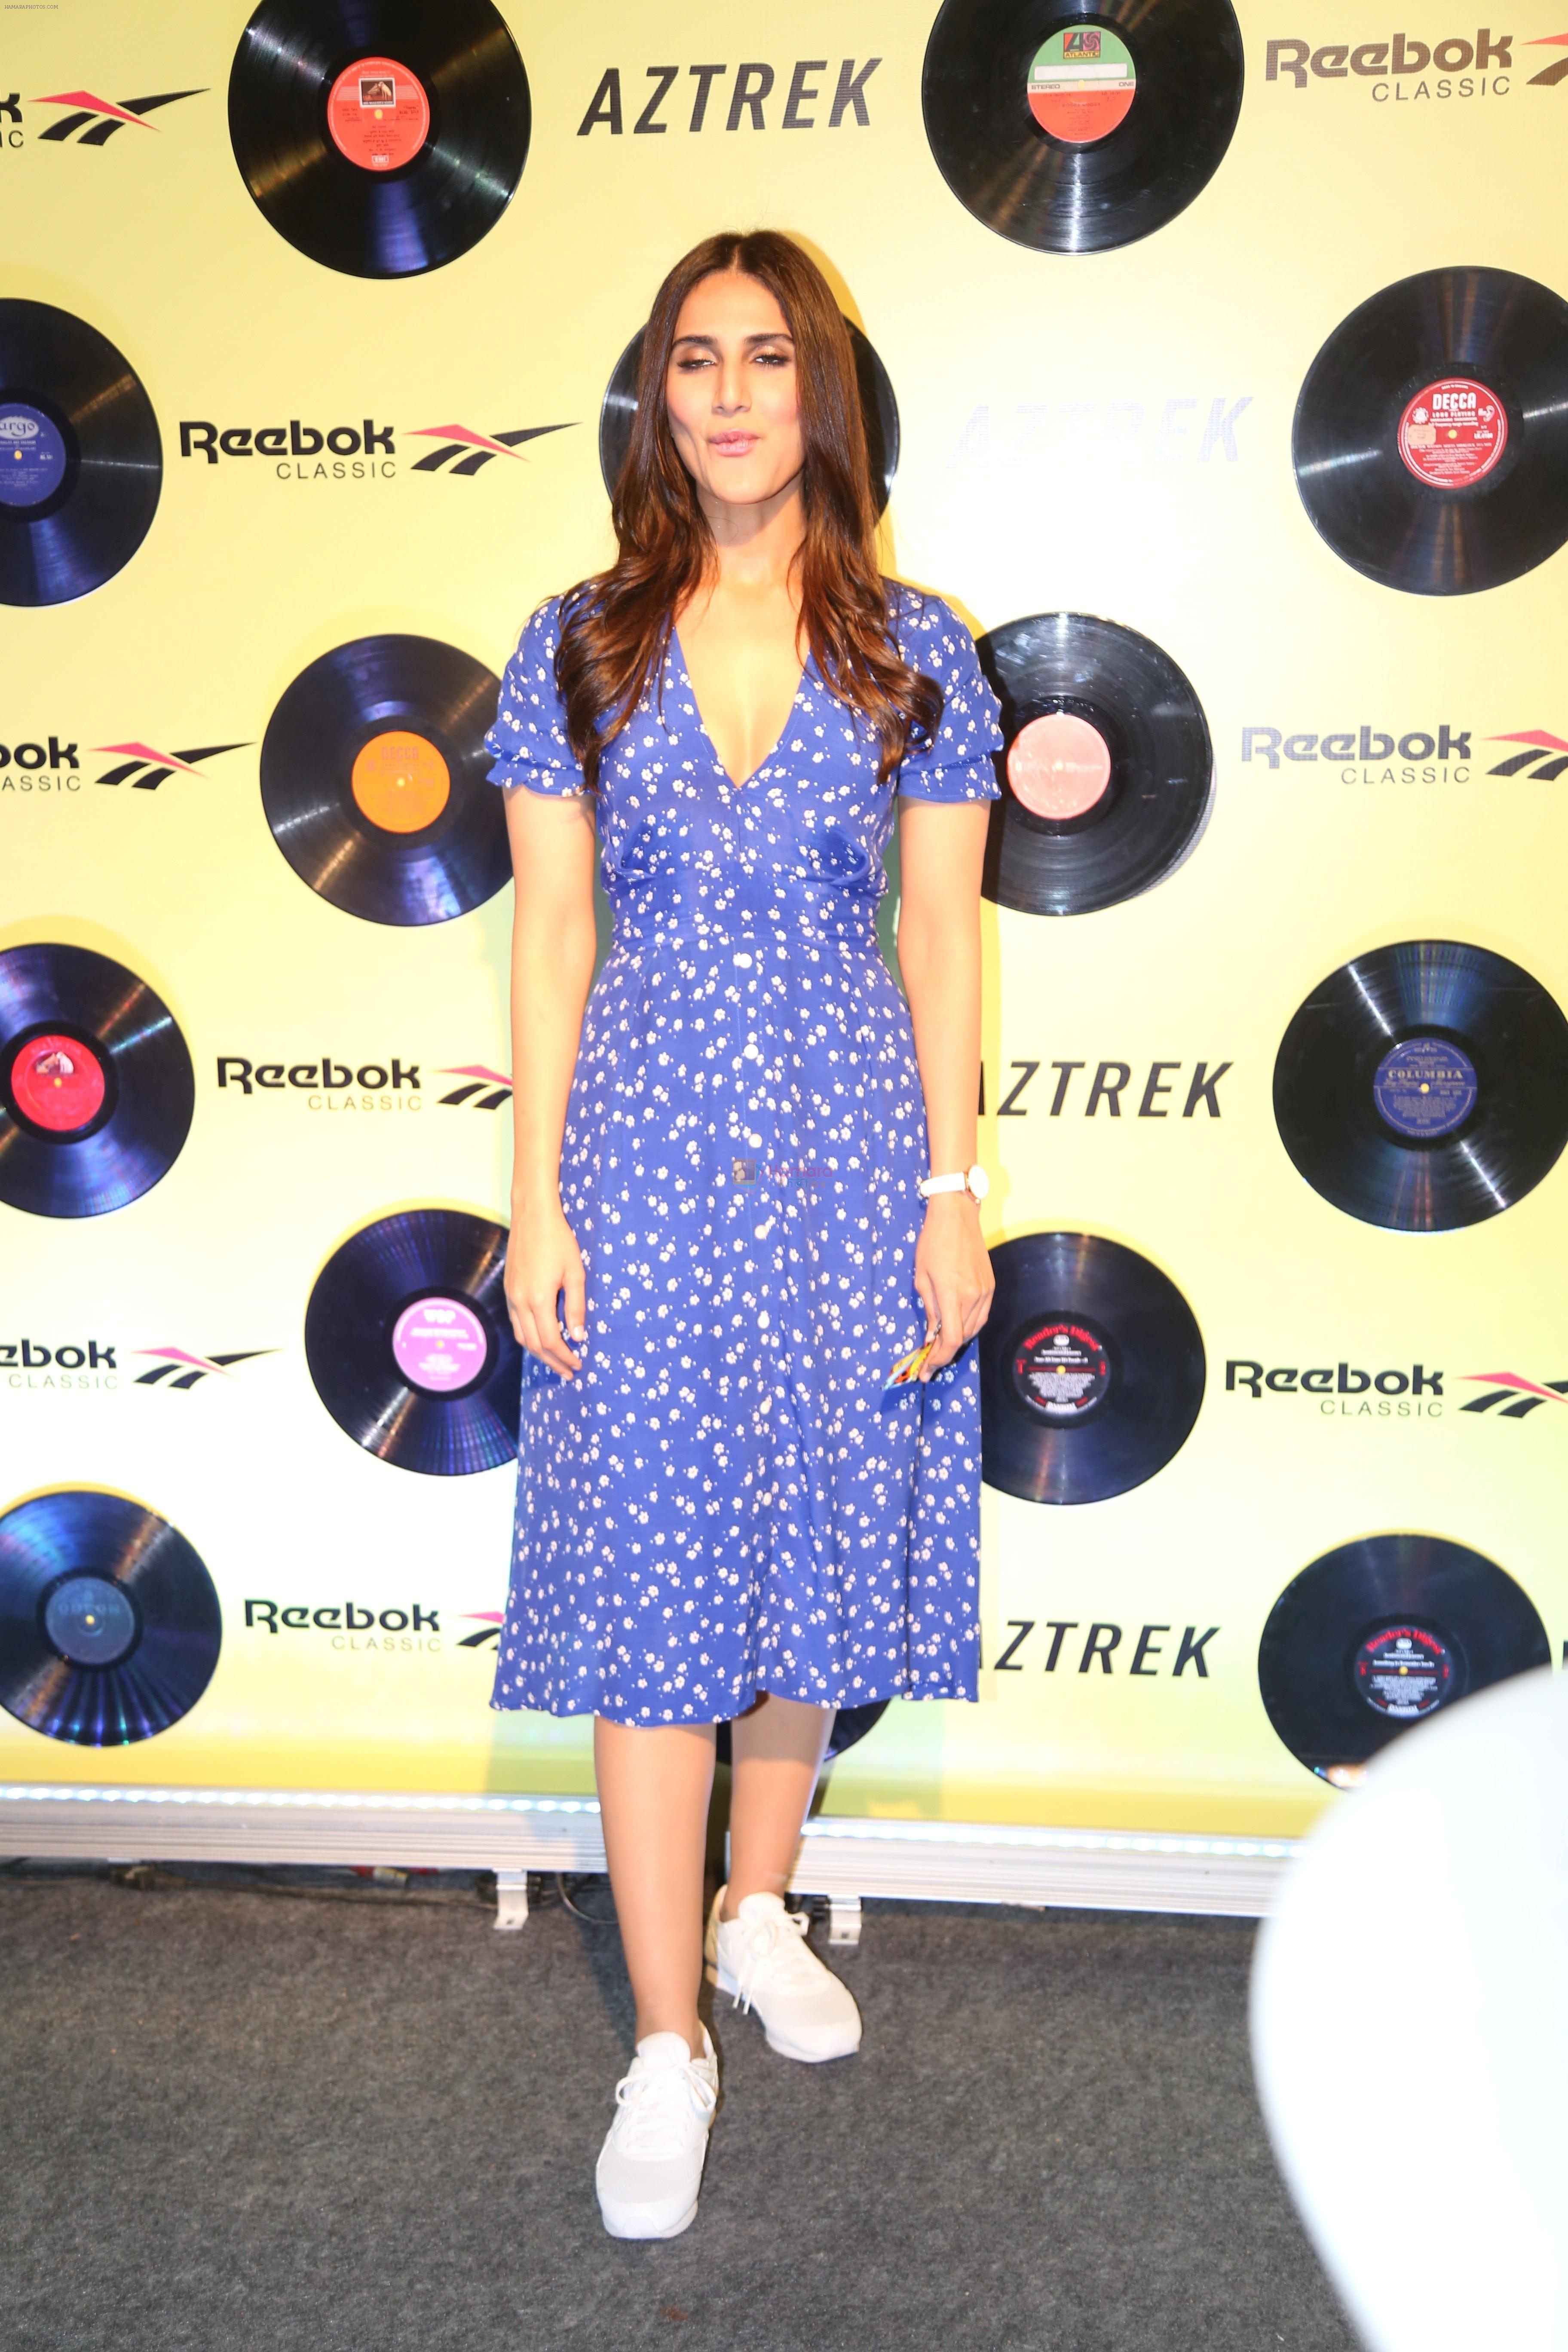 Vaani Kapoor at Reebok Aztrek event at famous studio mahalaxmi on 17th March 2019